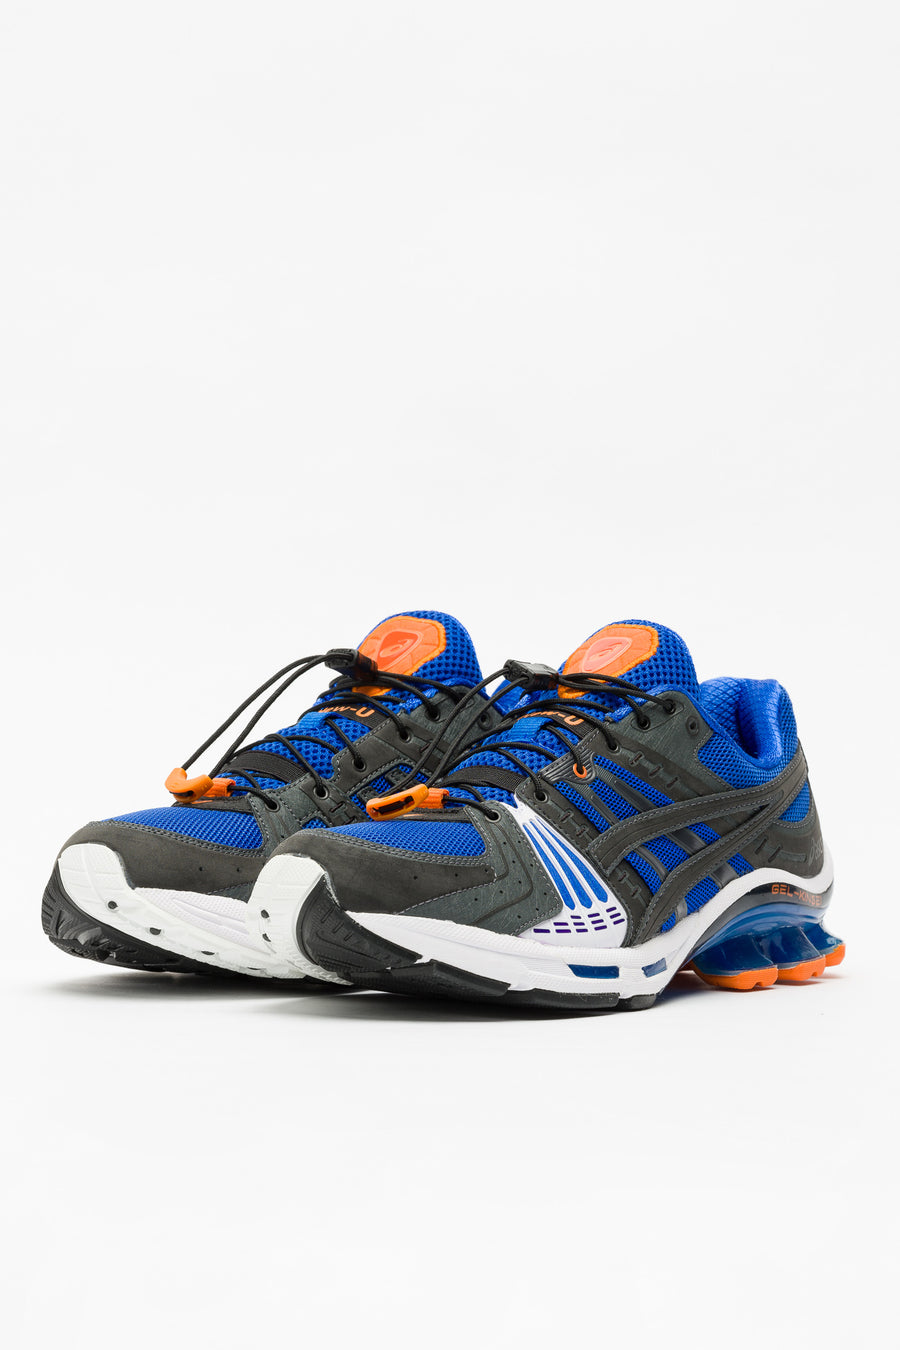 ASICS AFFIX Gel Kinsei OG in Illusion Blue/Dark Grey - Notre